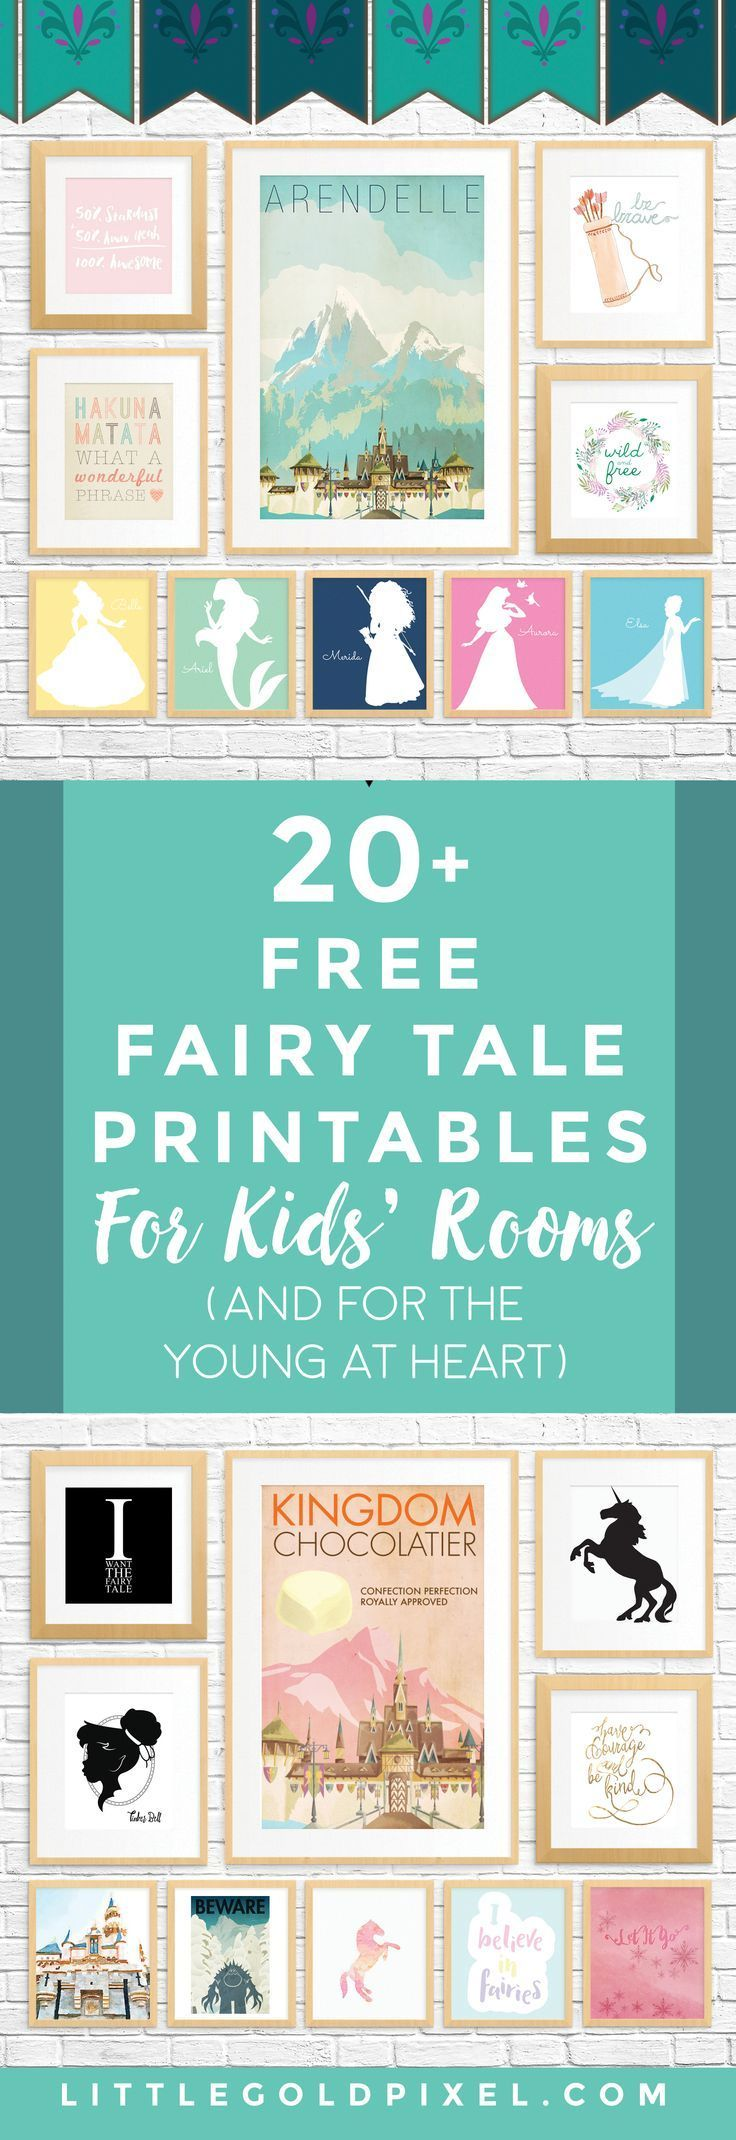 20 Free Fairy Tale Printables for Kids Rooms (and for adults who are young at heart!)